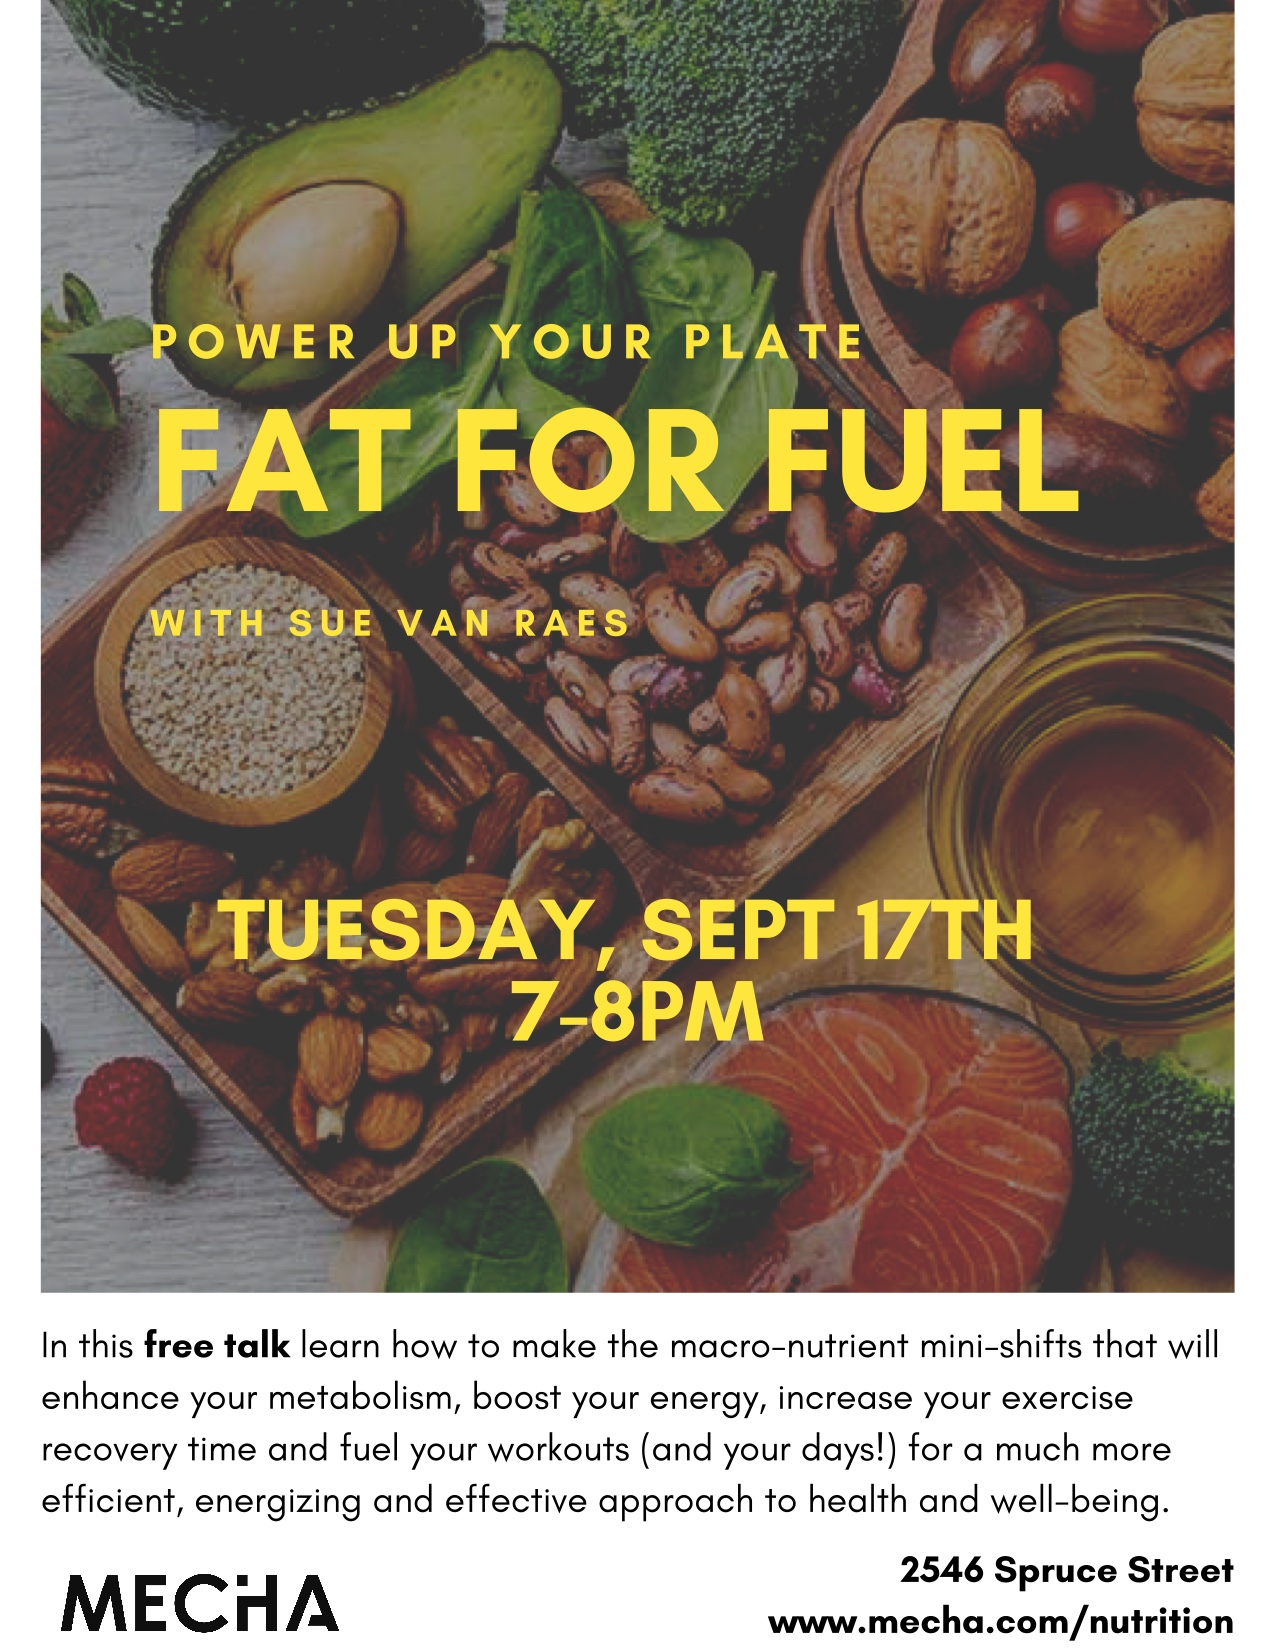 In the second talk, Sue will dive deeper into the macronutrient, fat, dispelling common myths about fat and introducing a healthy approach to fat for optimal health.